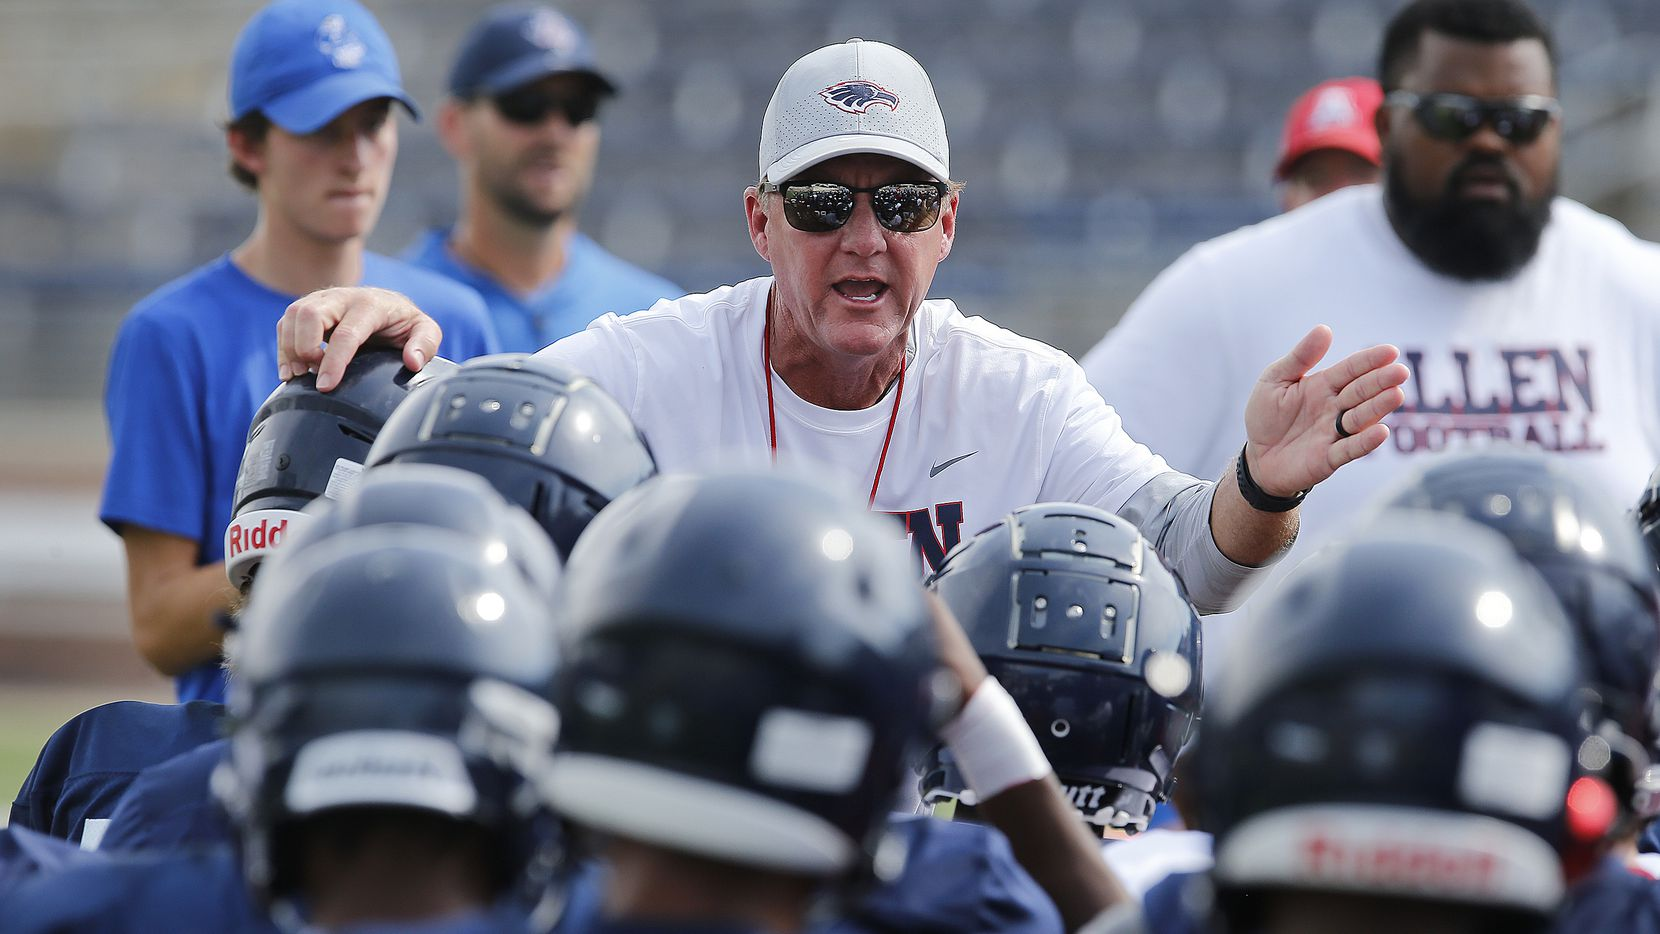 Allen High School head football coach Chad Morris talks to his team before practice after  Allen High School held media day on Saturday morning, August 14, 2021. (Stewart F. House/Special Contributor)